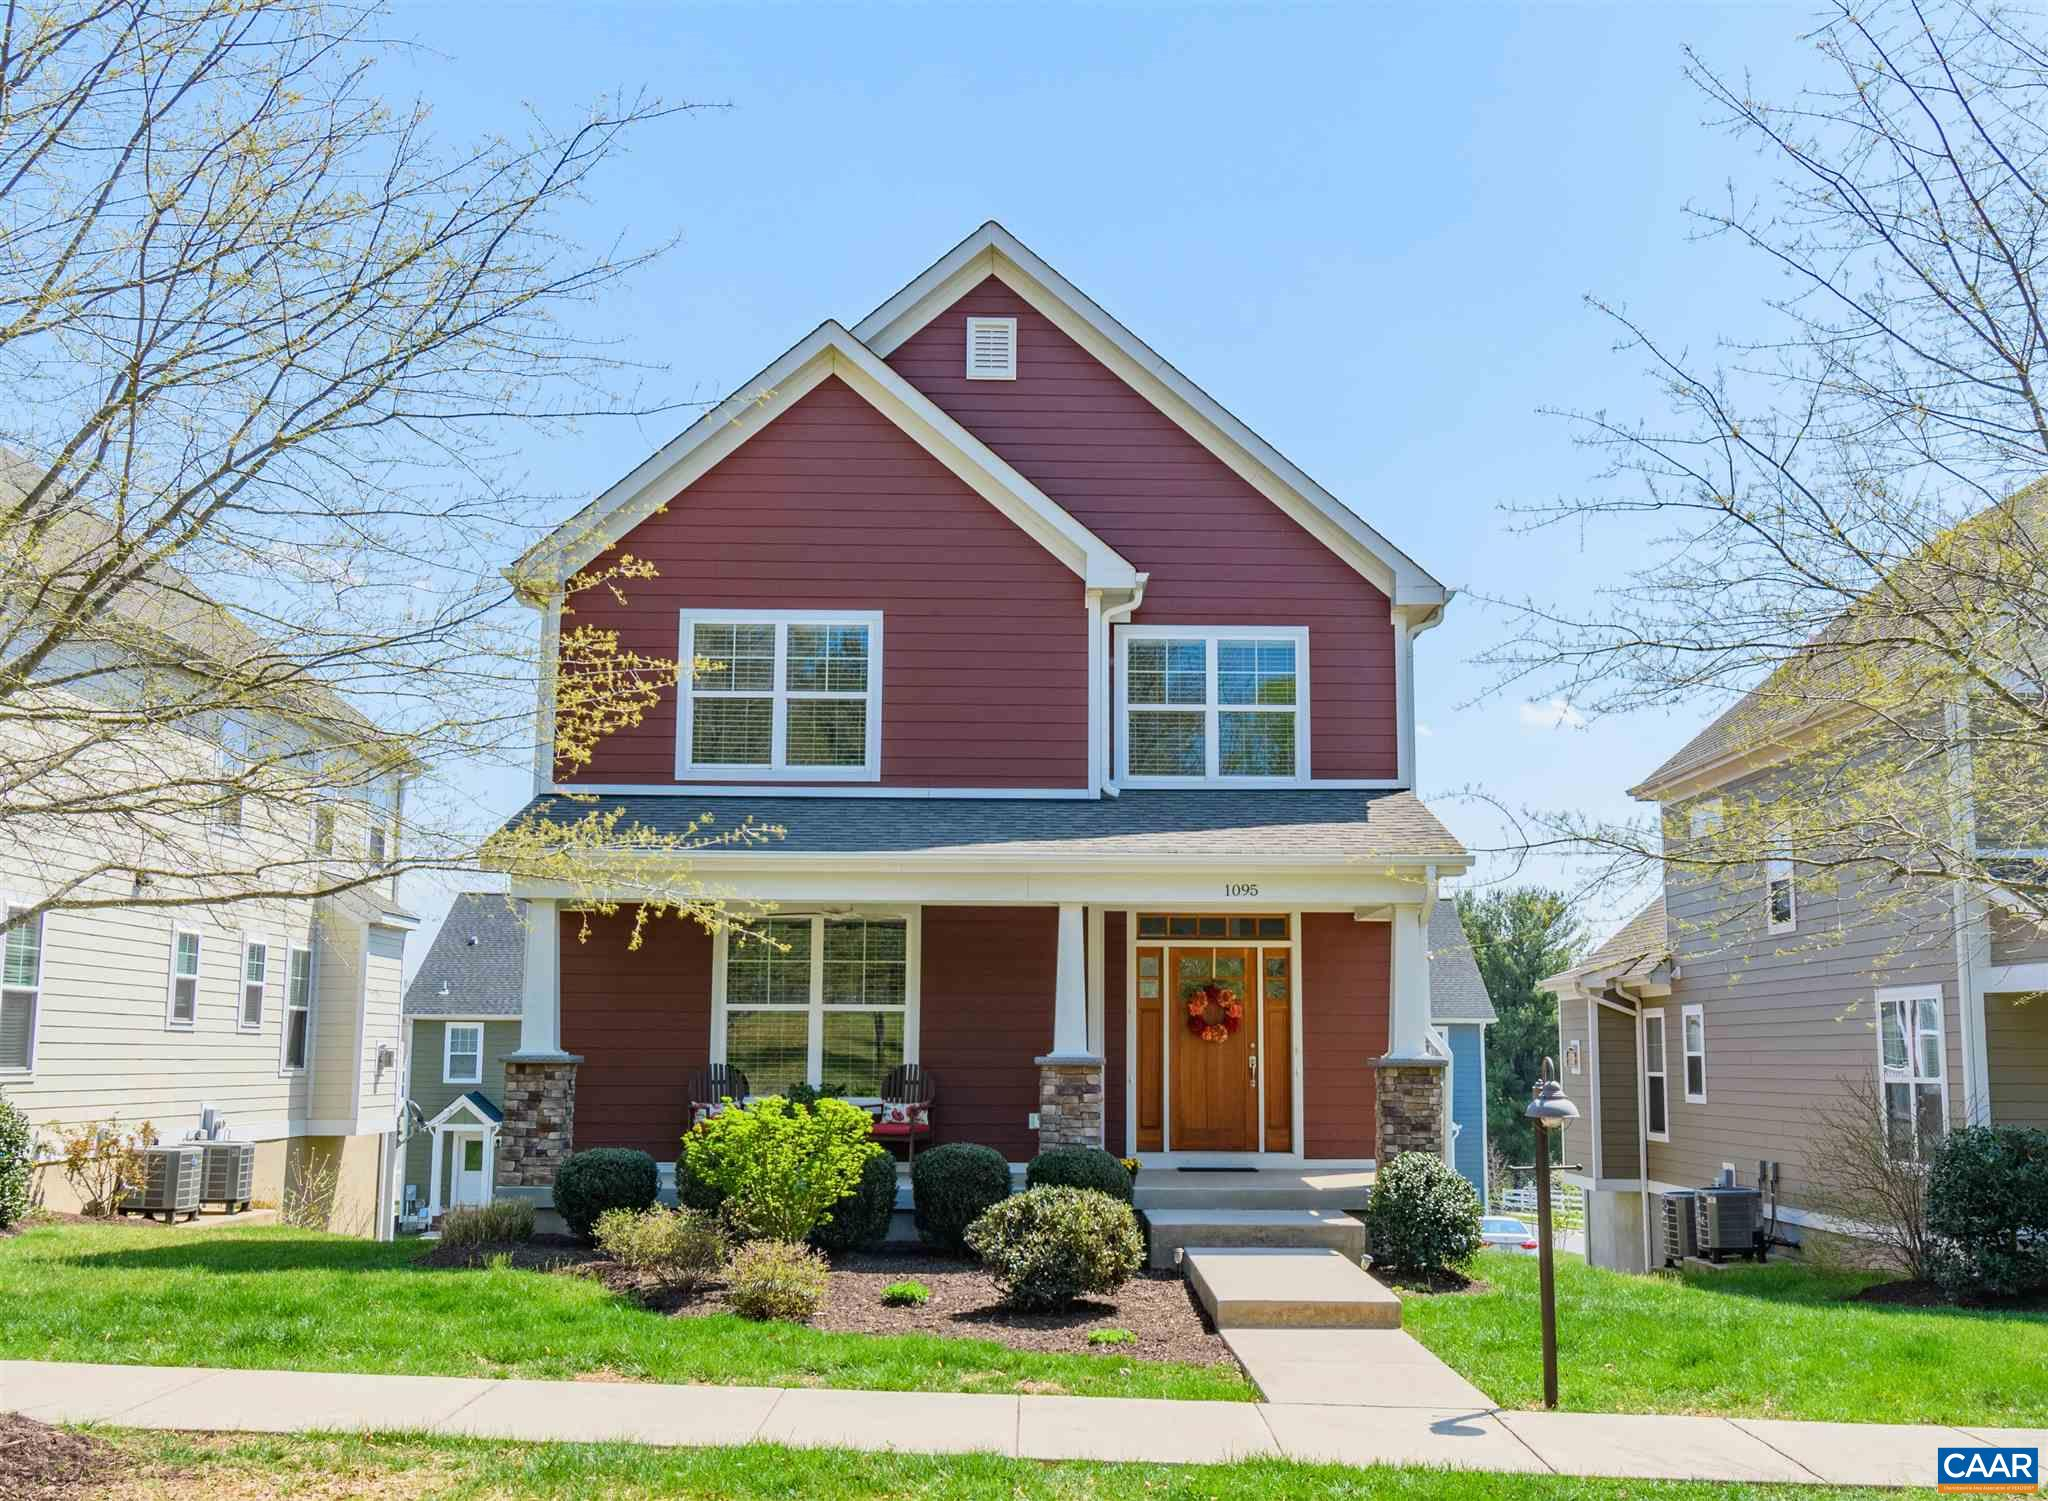 """NEW PRICE! - 1095 Killdeer Lane has craftsmanstyling withhardiplank siding. It features a very attractivesmall yard which is maintained by the HOA. This is a quiet street of only a few homes that is walkable to downtown Crozet, shops and restaurants. It is located just outside of Old Trail and only minutes to schools. The Vaulted Great Room has 5"""" rustic wood floors and opens to the modern kitchen with white shaker style cabinetry.TheMaster Suite isconveniently located on the Main floor and there are 3 additional spacious bedrooms upstairs and the bathrooms all have custom tile work.The oversized 2-car garage is accessed by the rear alley. --- Gibson Homes is known for solid 2x6 construction, foam insulation package, conditioned basement, Dual fuel 2 zone HVAC, solid core doors, superior trim package. Basement is plumbed for a bath for future expansion. First time on the market for this custom built home. You will be delighted when you tour in person. See documents in the listing for Plat, Floor-plans, Elevations and do not miss the 3D-Virtual Tour."""